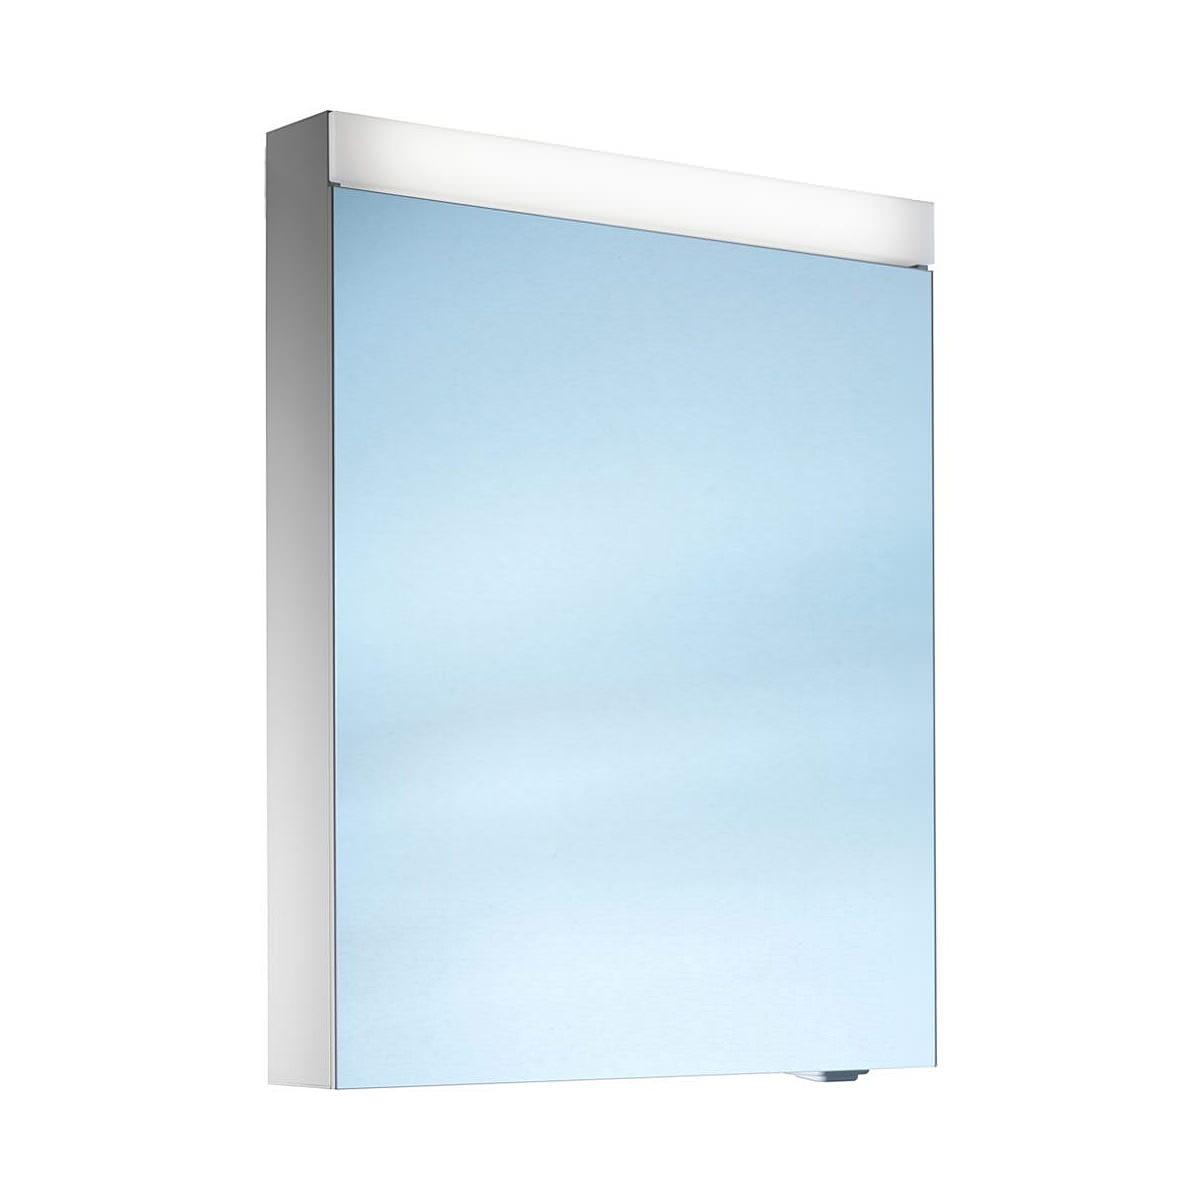 Mirror Bathroom Cabinets Uk Schneider Pataline 1 Door Led Mirror Cabinet 500mm